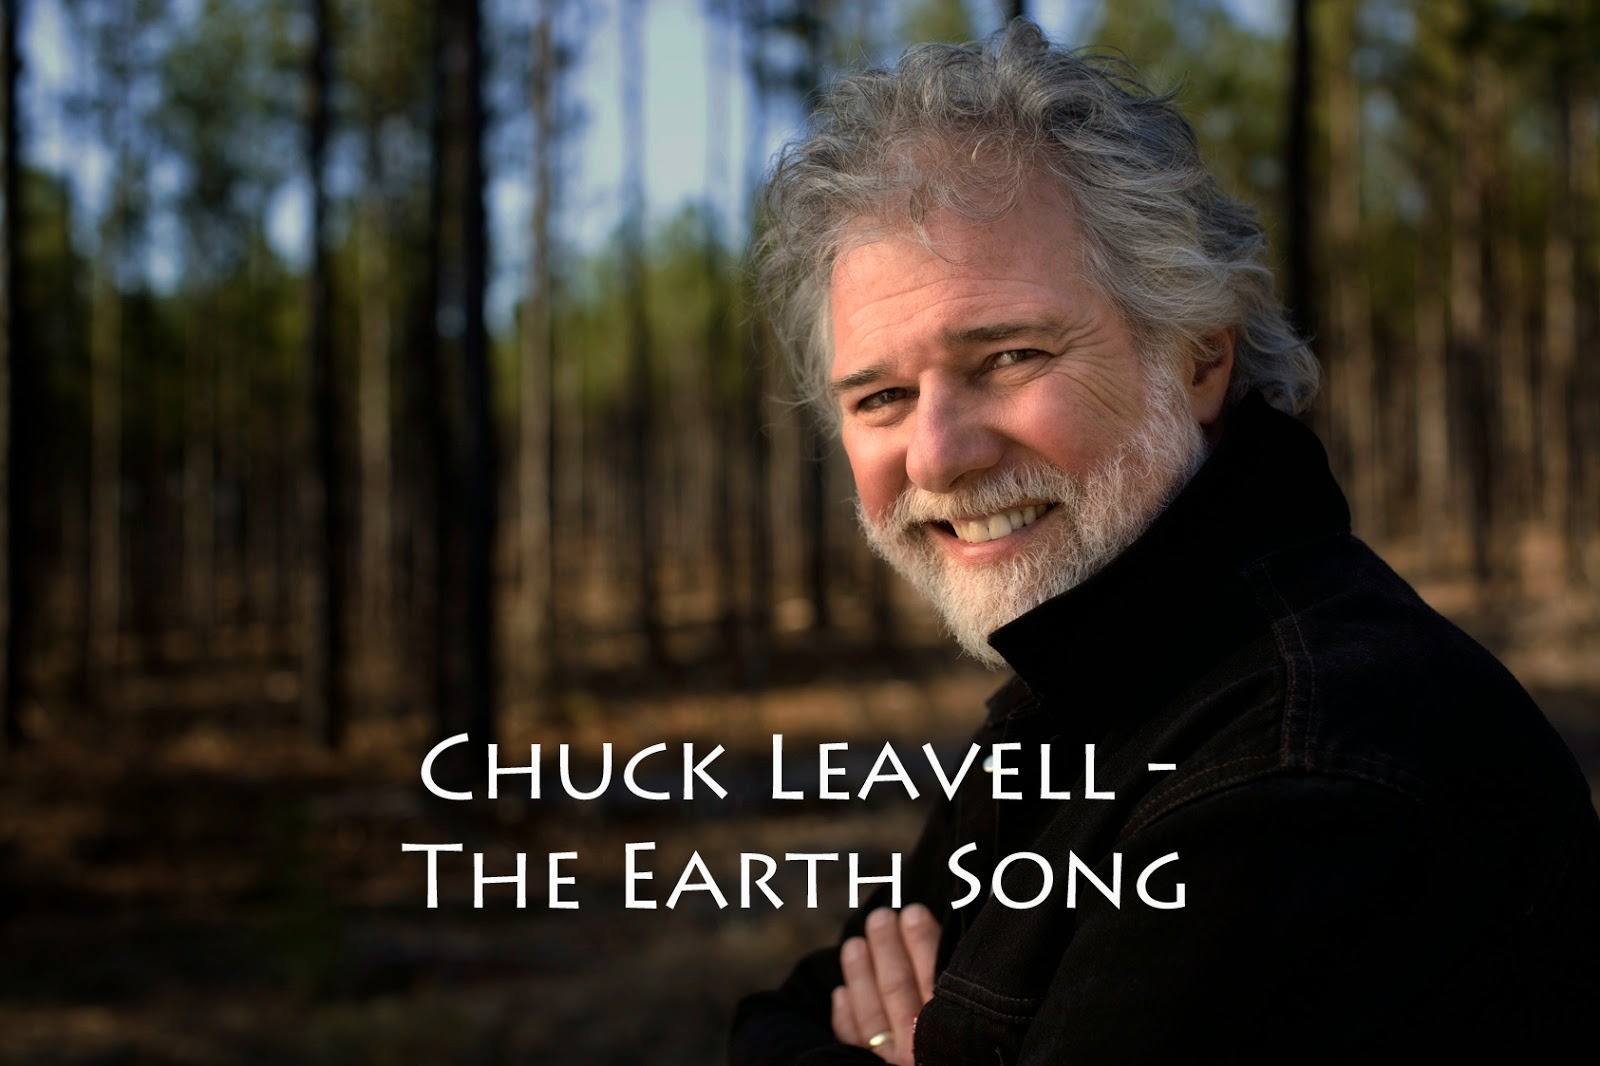 Tree planter, Sustainable forester and emvironmental conservationist Chuck Leavell